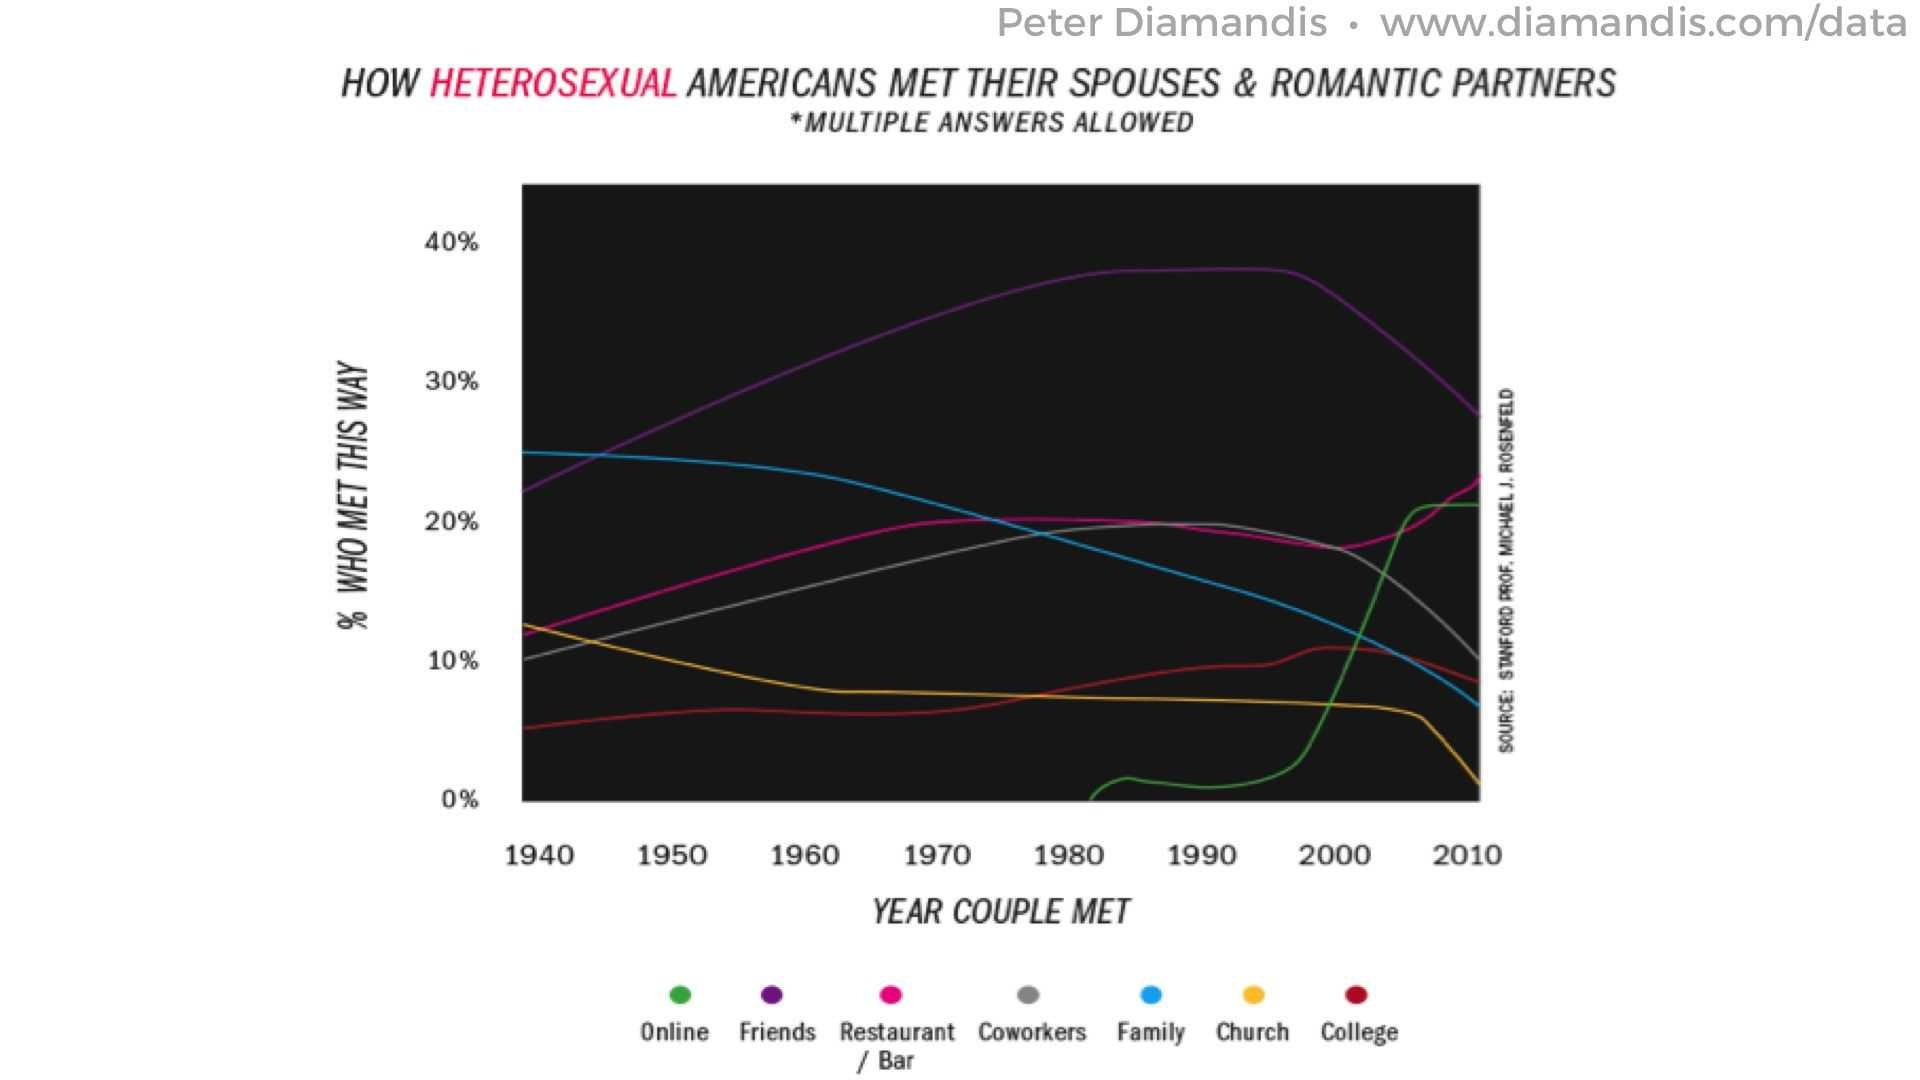 Heterosexual-marriage-trends